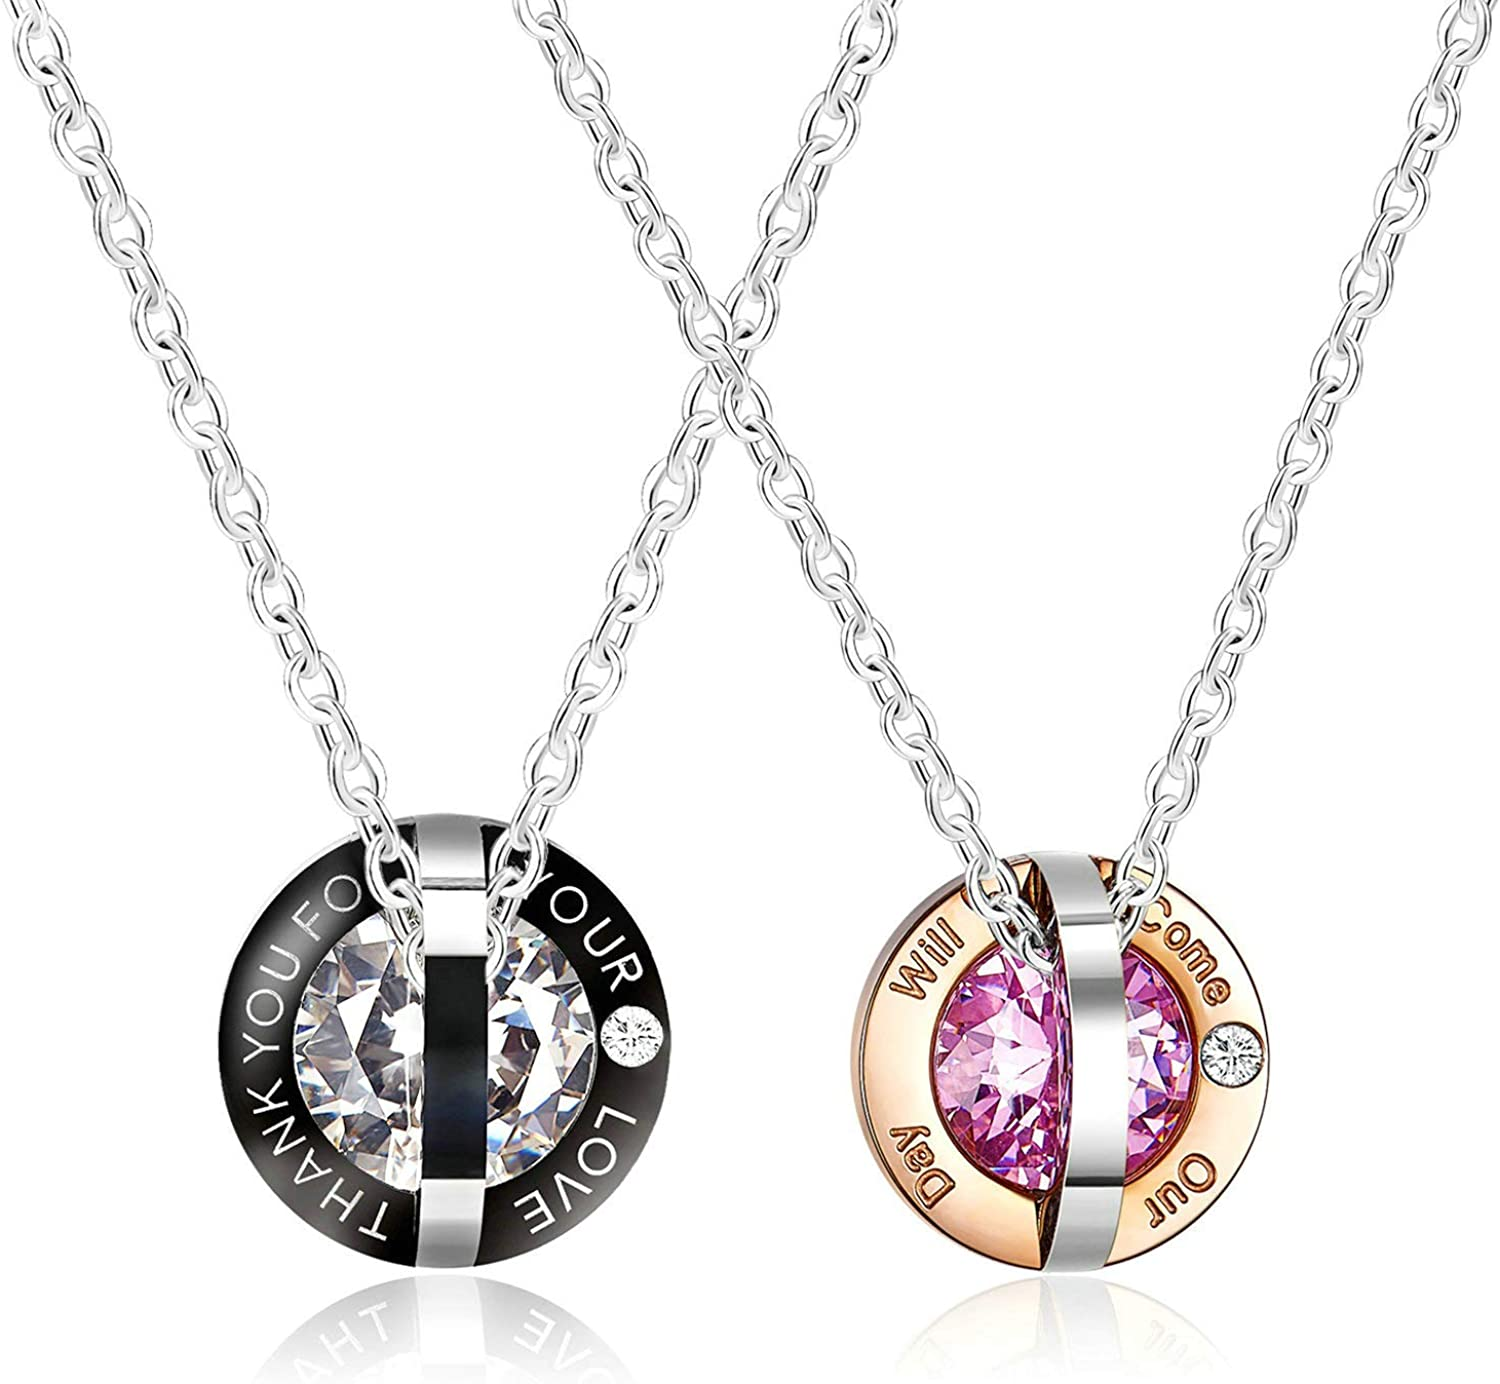 MoAndy Necklace for Couple Titanium Steel Pendant Necklaces Star Circle Engraved with Cubic Zirconia